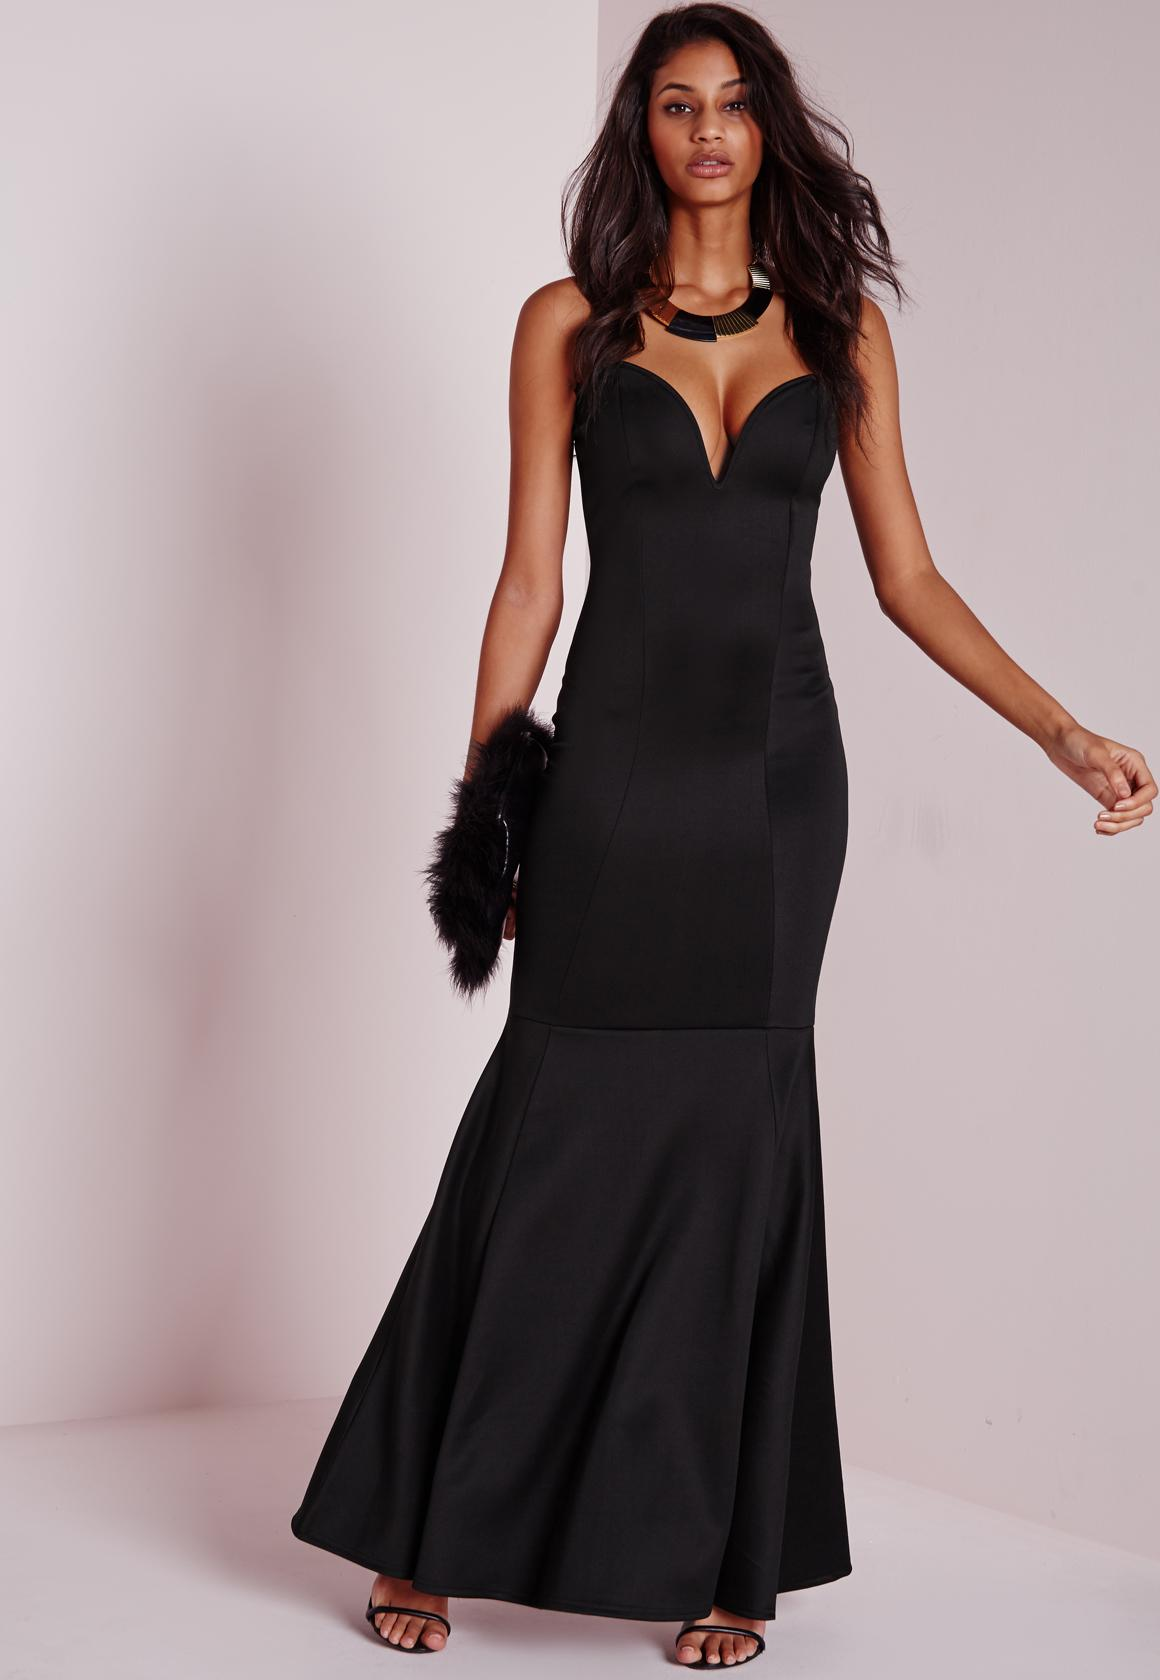 Sweetheart Neck Maxi Dress Black | Missguided